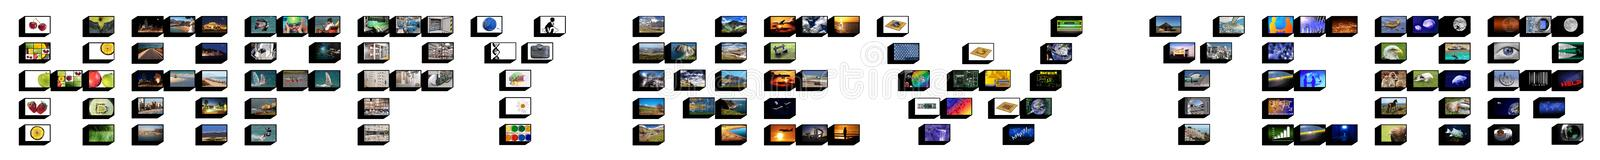 An neuf heureux images stock